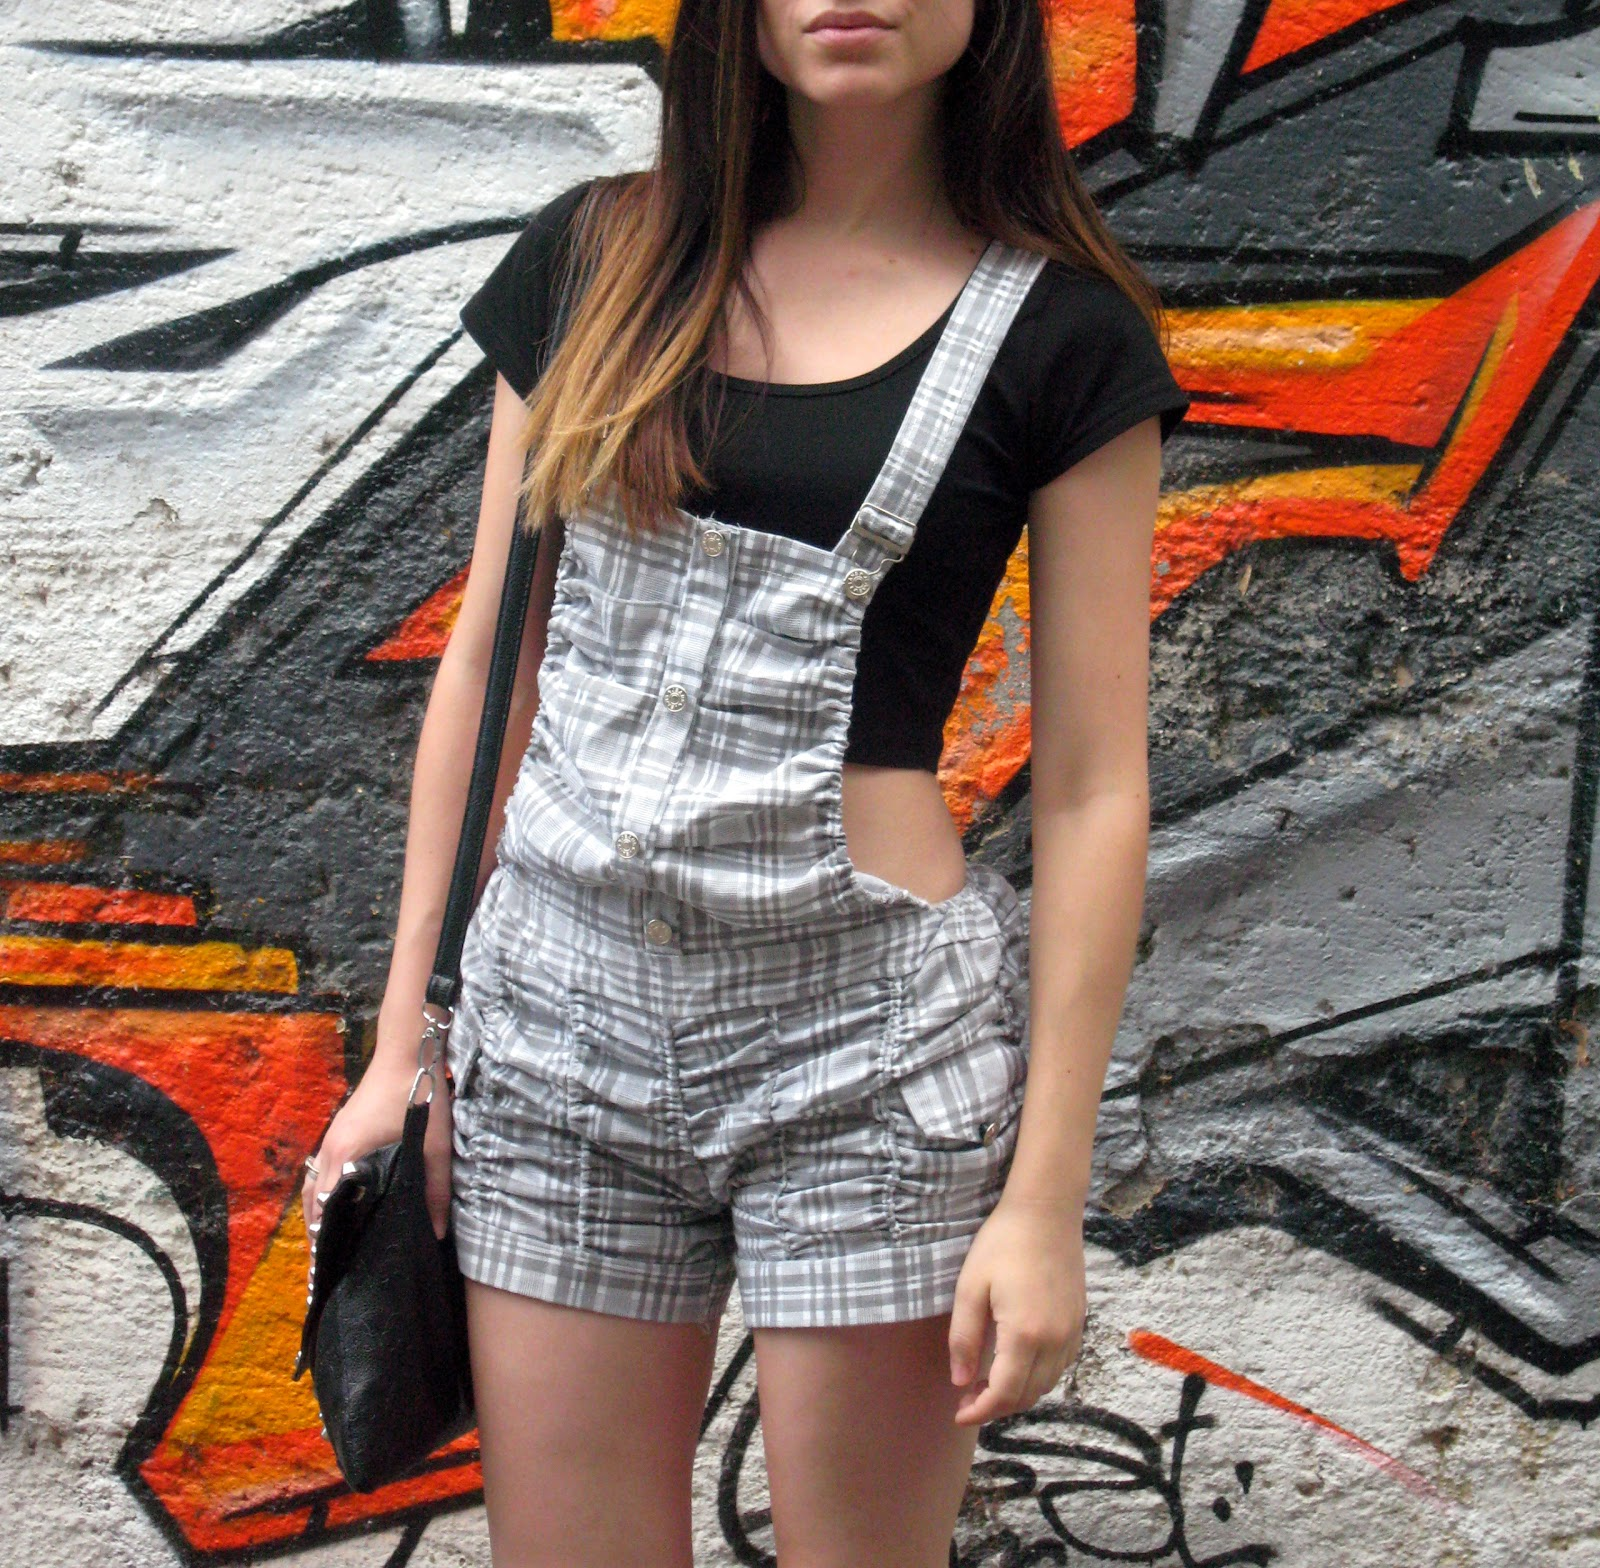 trend overalls, grey shorts overall romper, new yorker black crop top, black flip flops, black studded clutch, ombre hair, casual look, styling overalls romper and crop top,